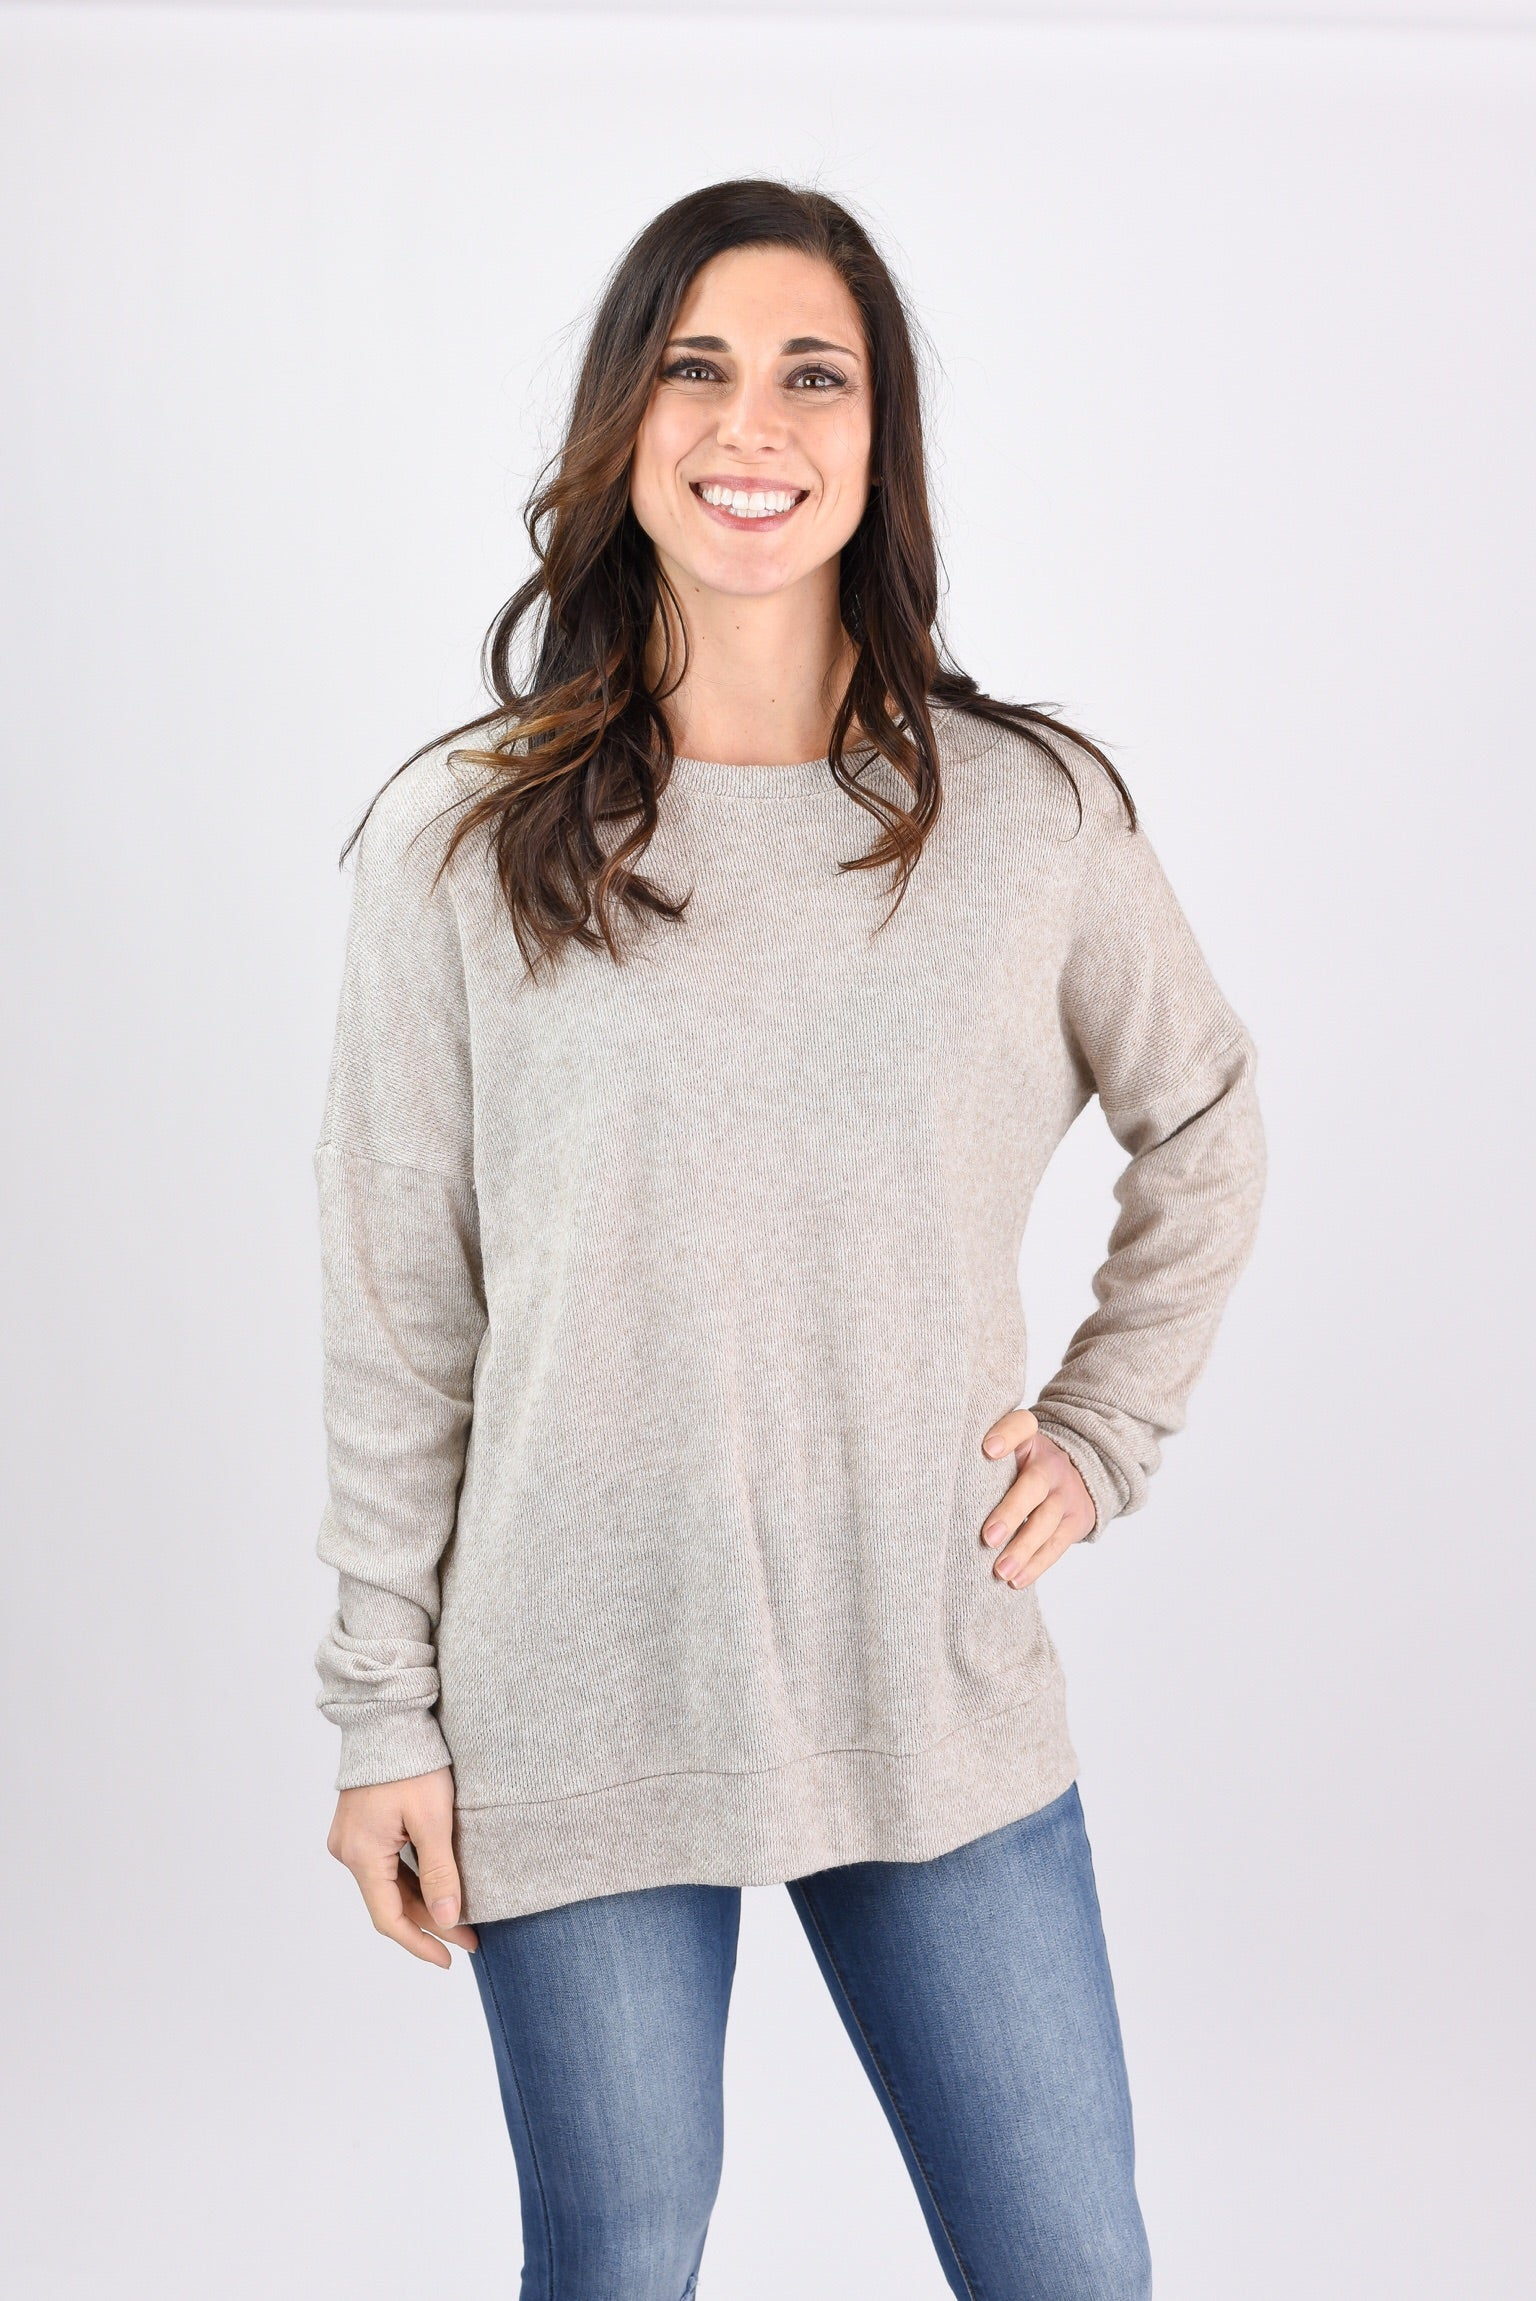 From The Start Lightweight Crew Neck Long Sleeve - Oatmeal